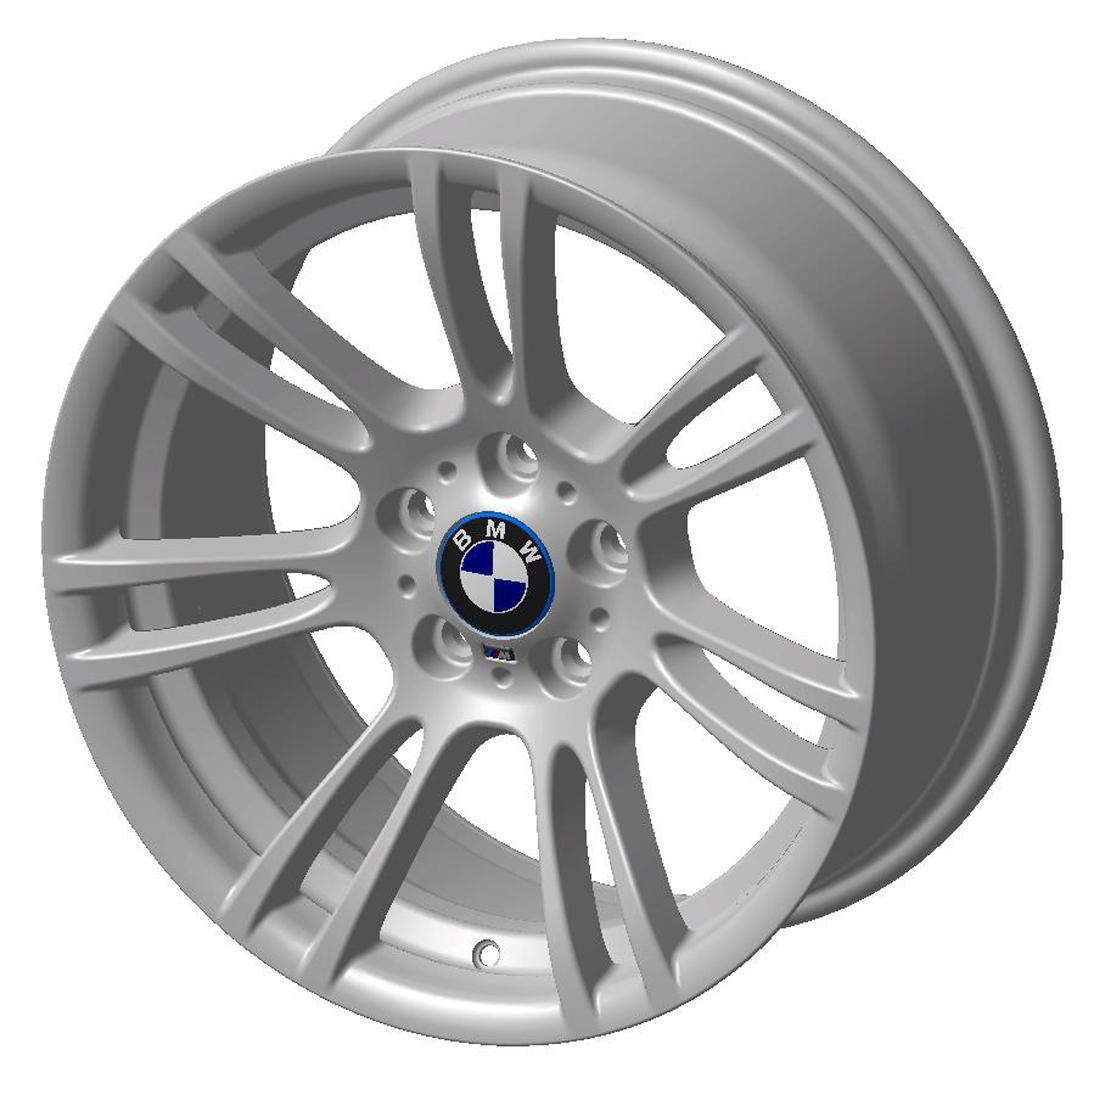 ShopBMWUSA.com: BMW STYLE 270M COLD WEATHER WHEEL AND TIRE